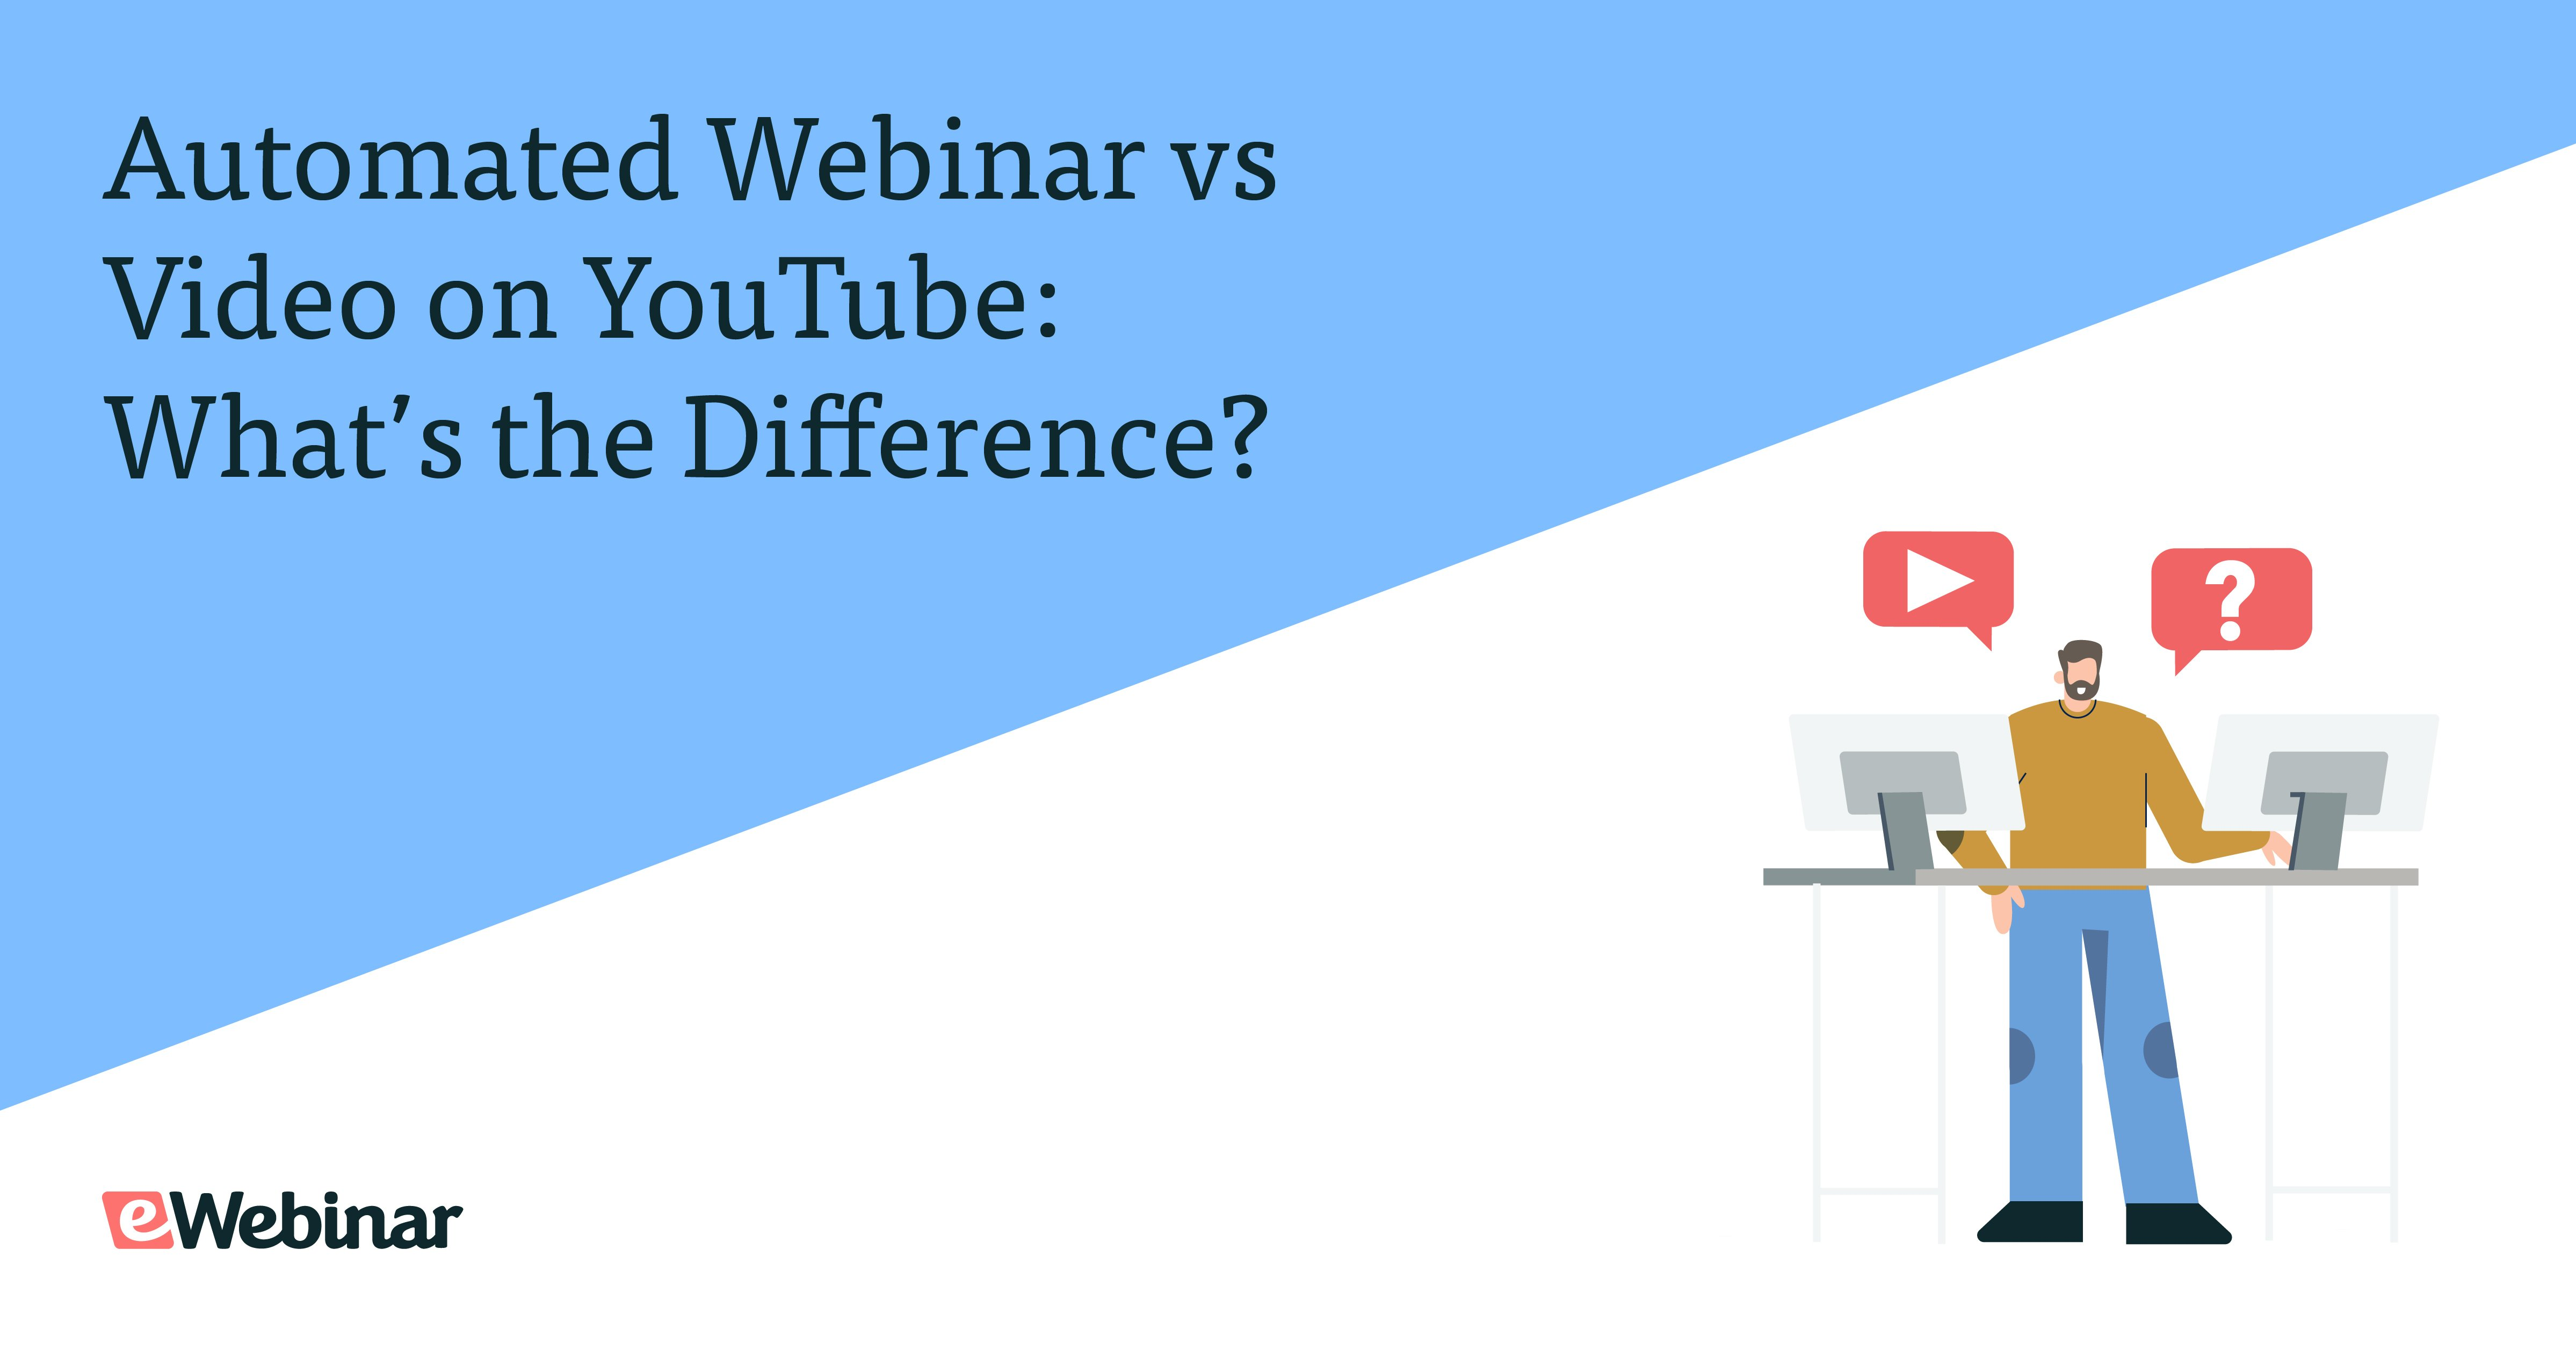 Automated Webinar vs Video on YouTube: What's the Difference?